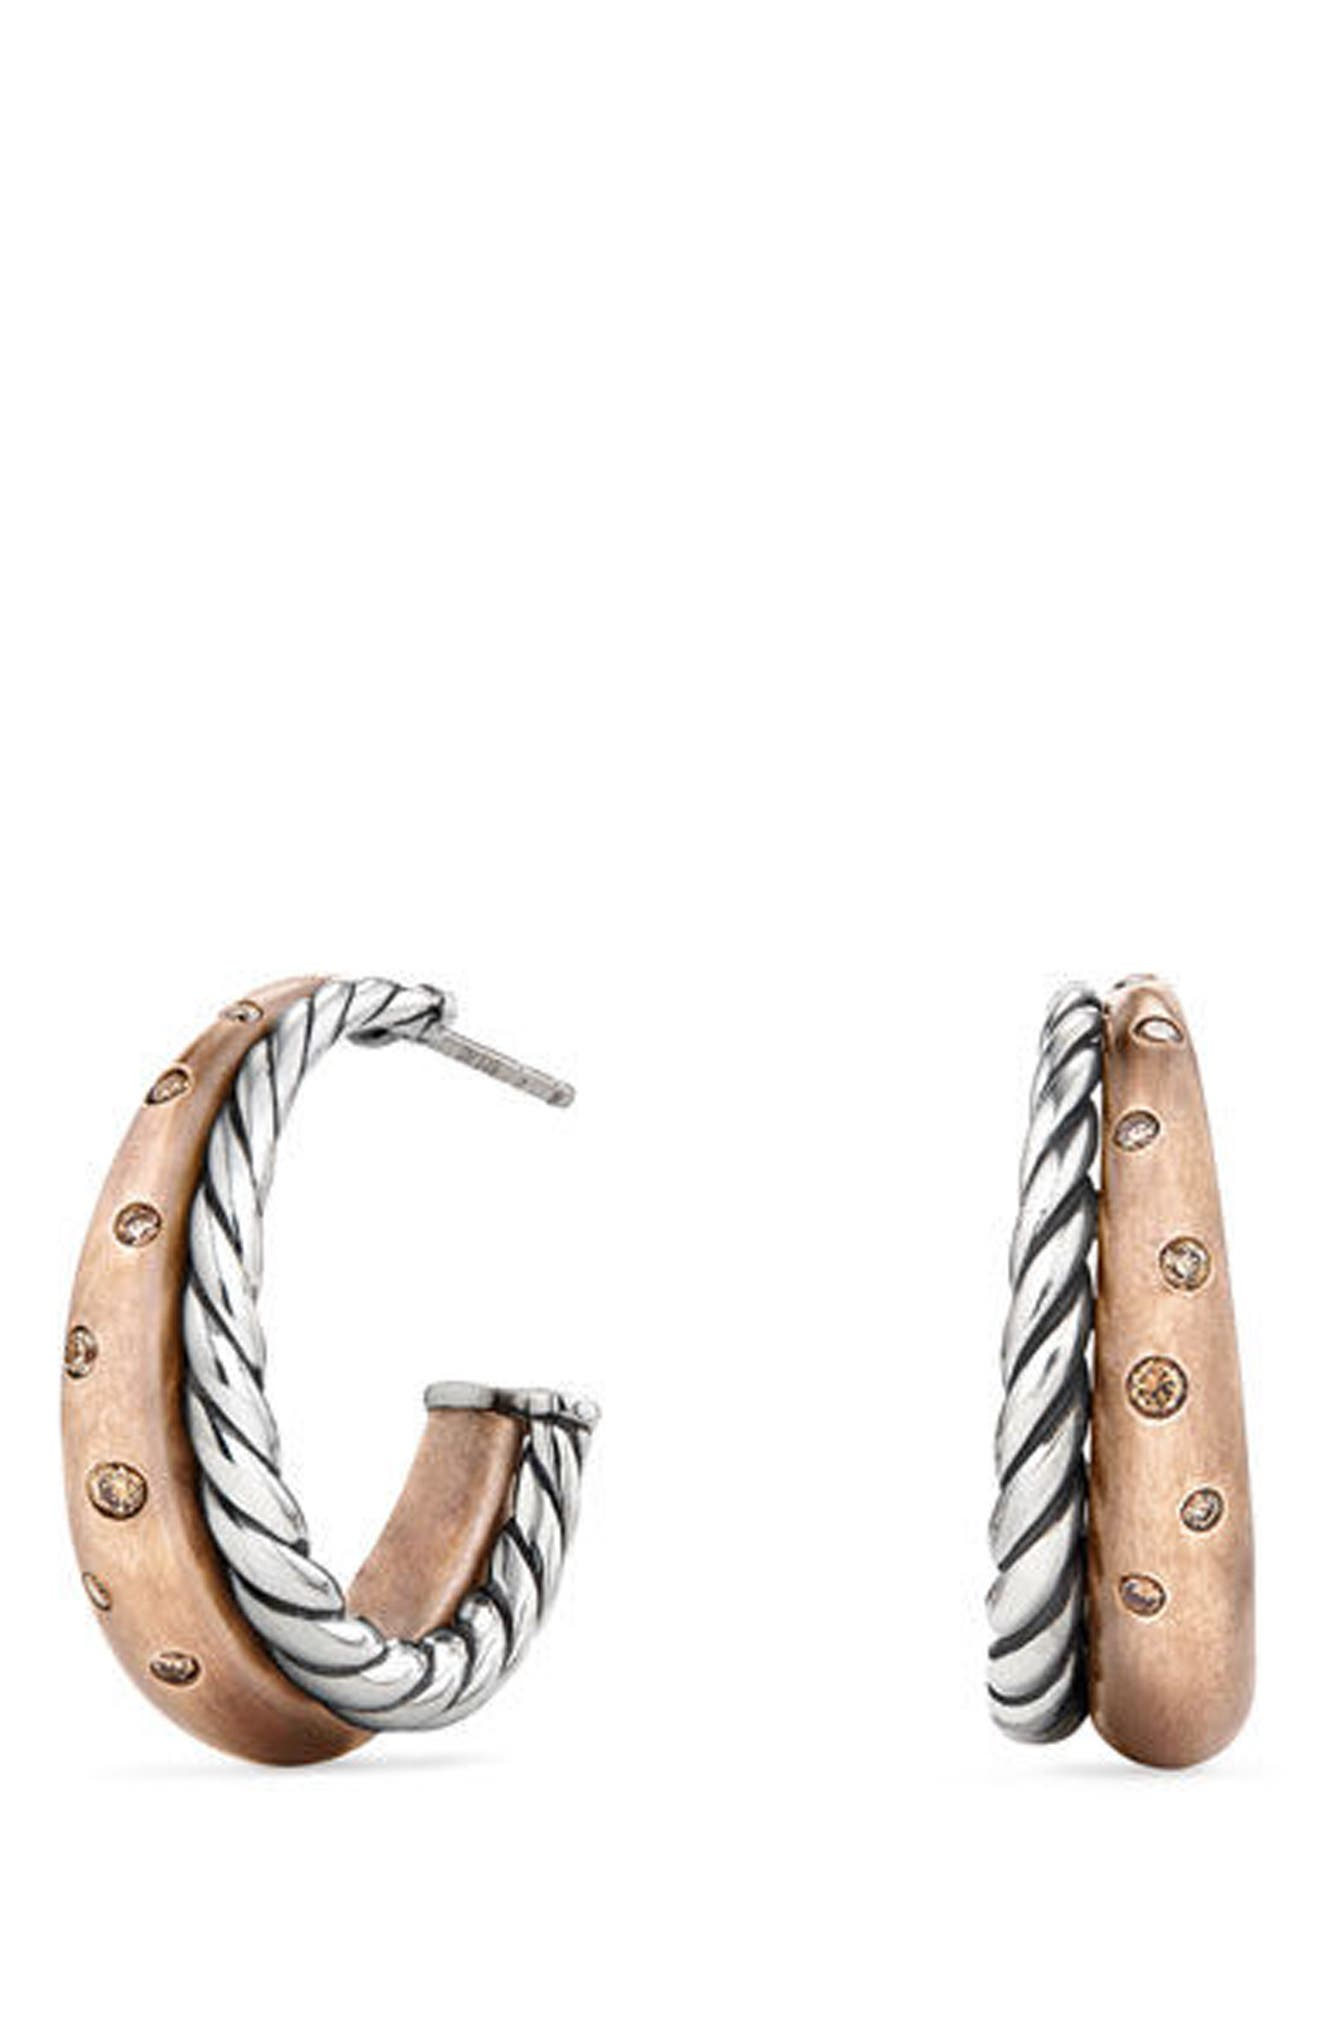 Pure Form Mixed Metal Hoop Earrings with Diamonds, Bronze & Silver, 26.5mm,                             Main thumbnail 1, color,                             Cognac